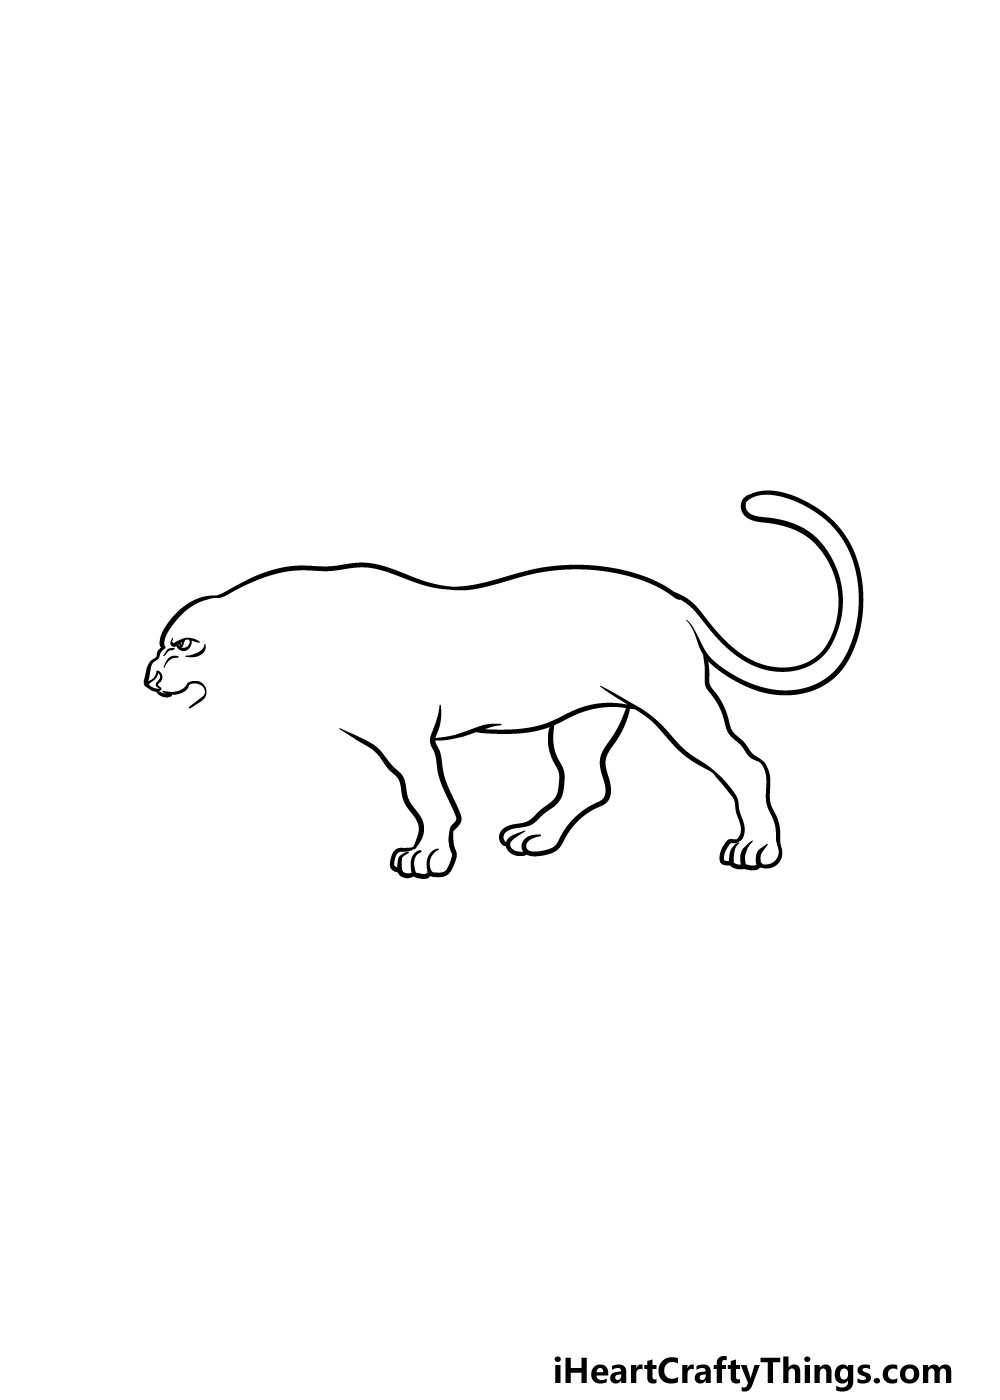 drawing a panther step 4